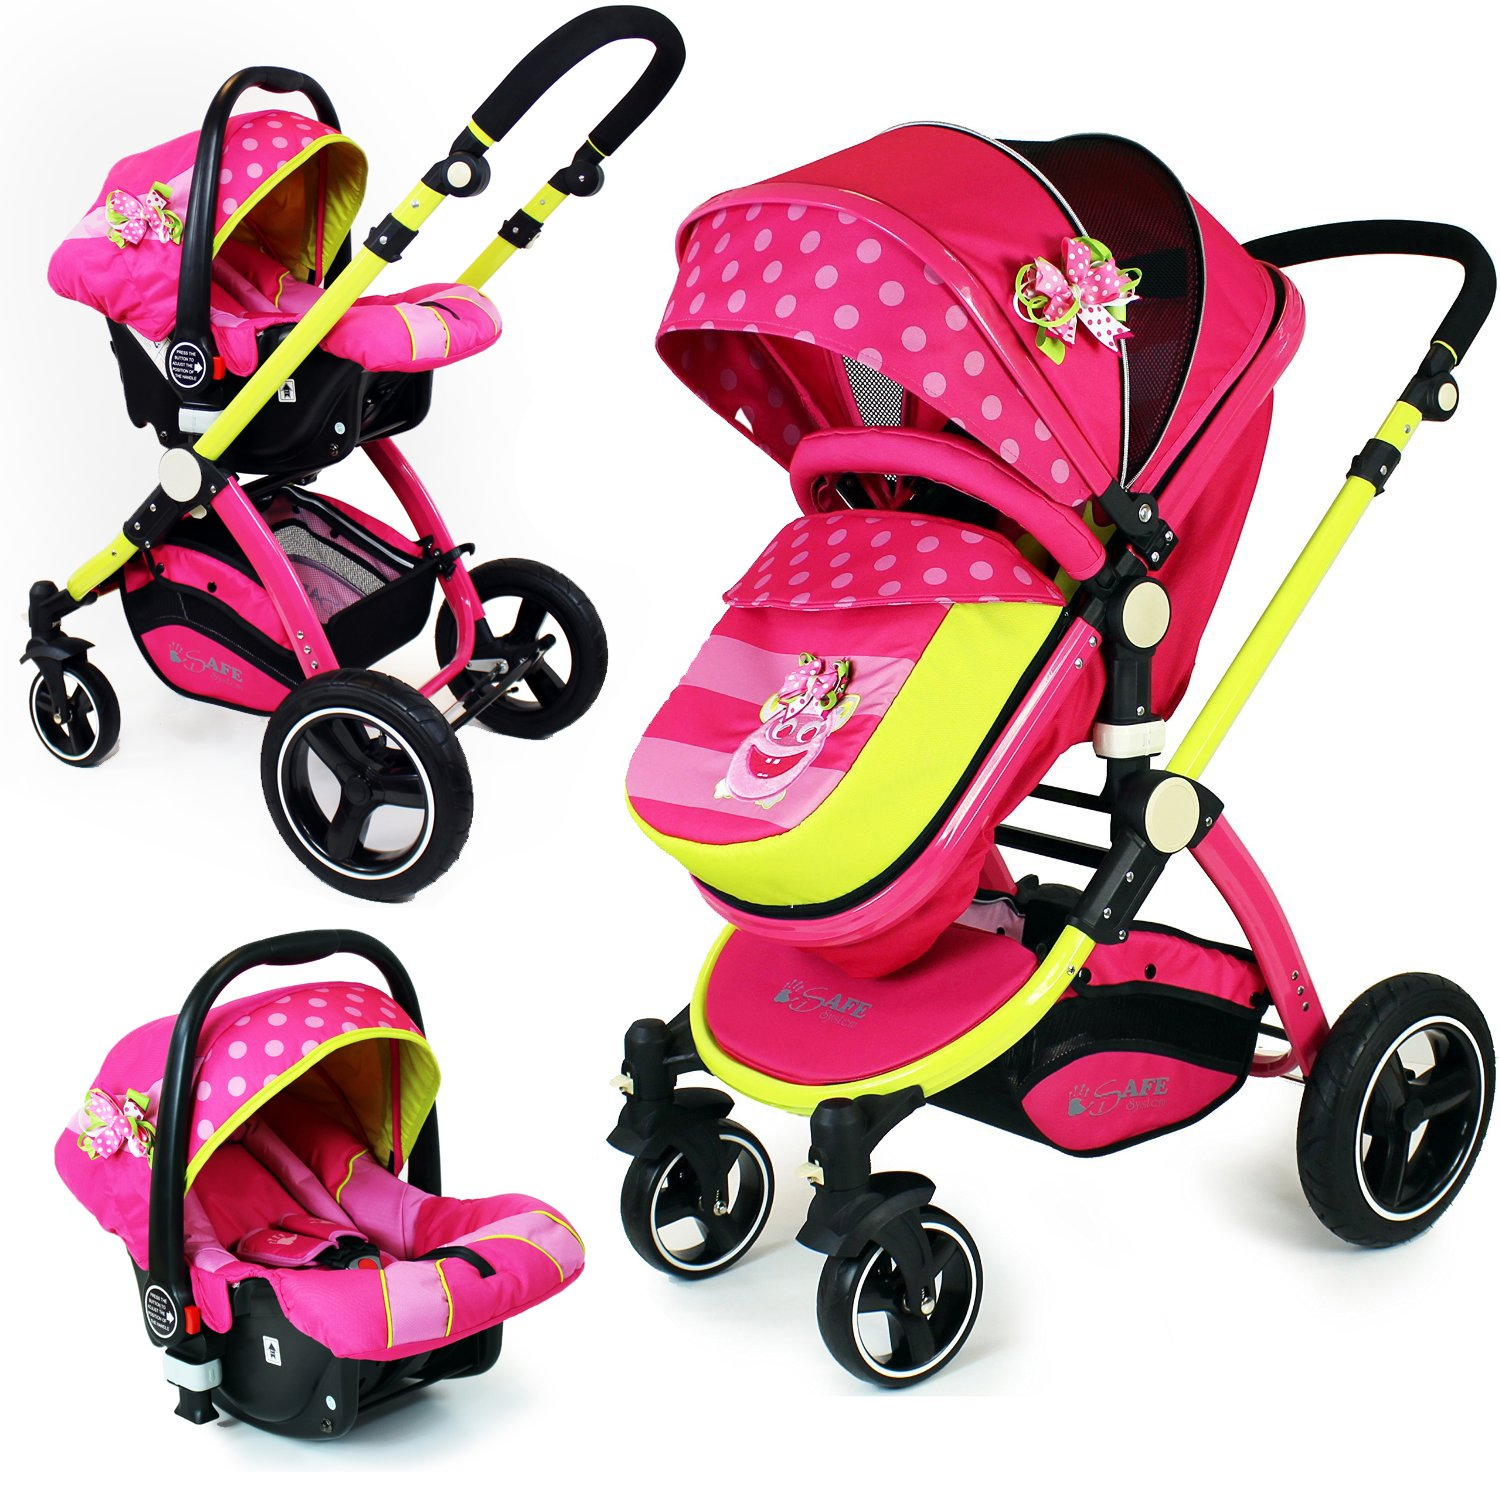 pink 3 in 1 pram 3 in 1 prams Cheap 3 in 1 Prams 81Mi6OIiH1L